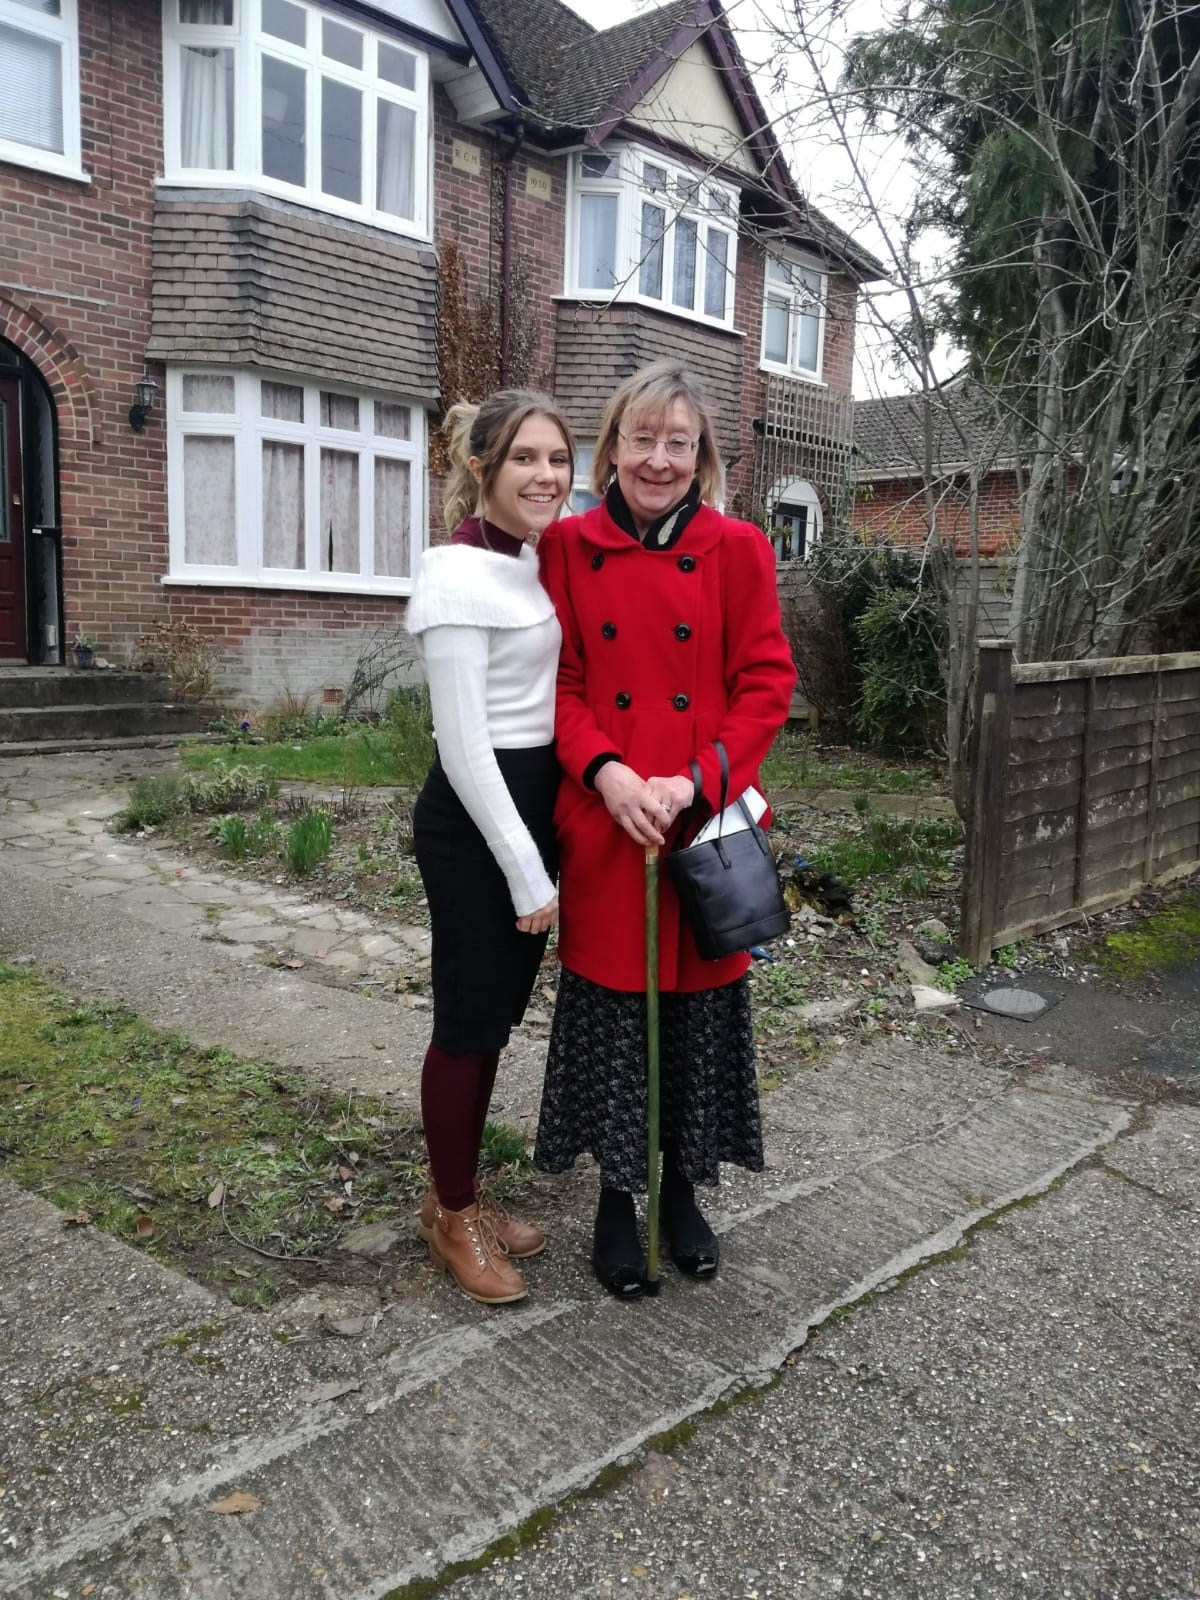 This a picture from Donna, it's Bernadette with her daughter Molly.